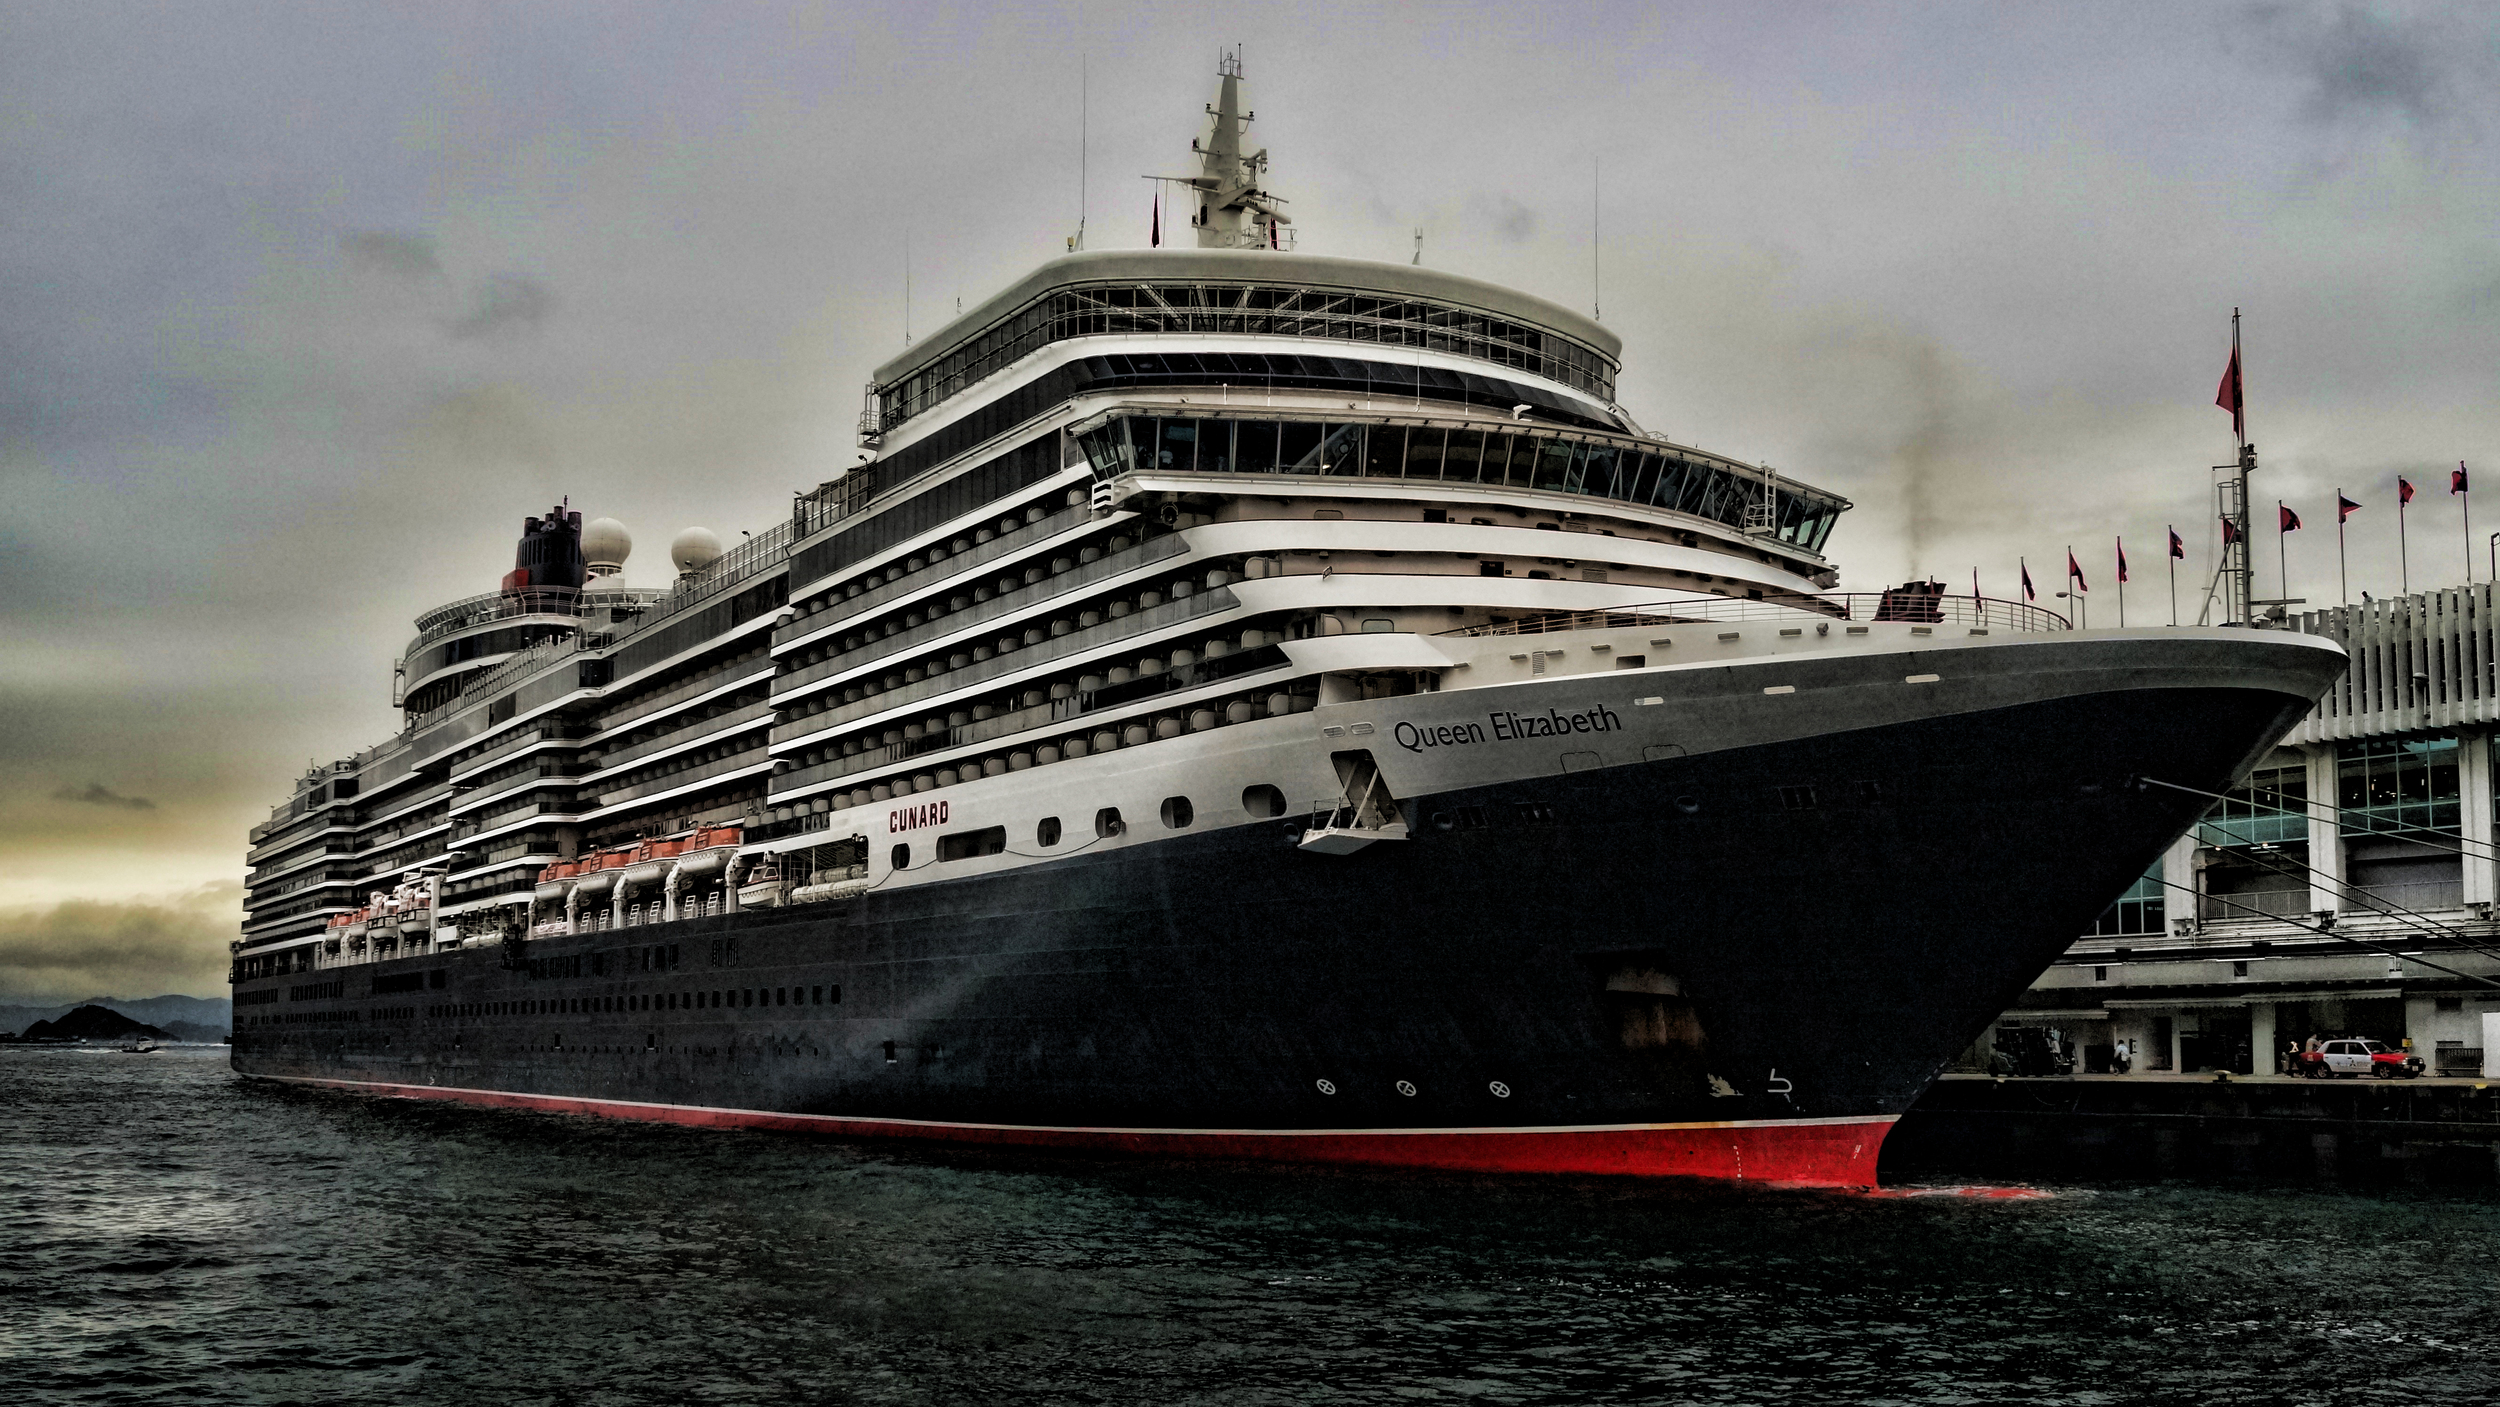 What a bloody marvellous boat, the Queen Elizabeth of the Cunard Line, this week we have had in town the Queen Elizabeth, the Queen Mary and the Queen Victoria!!